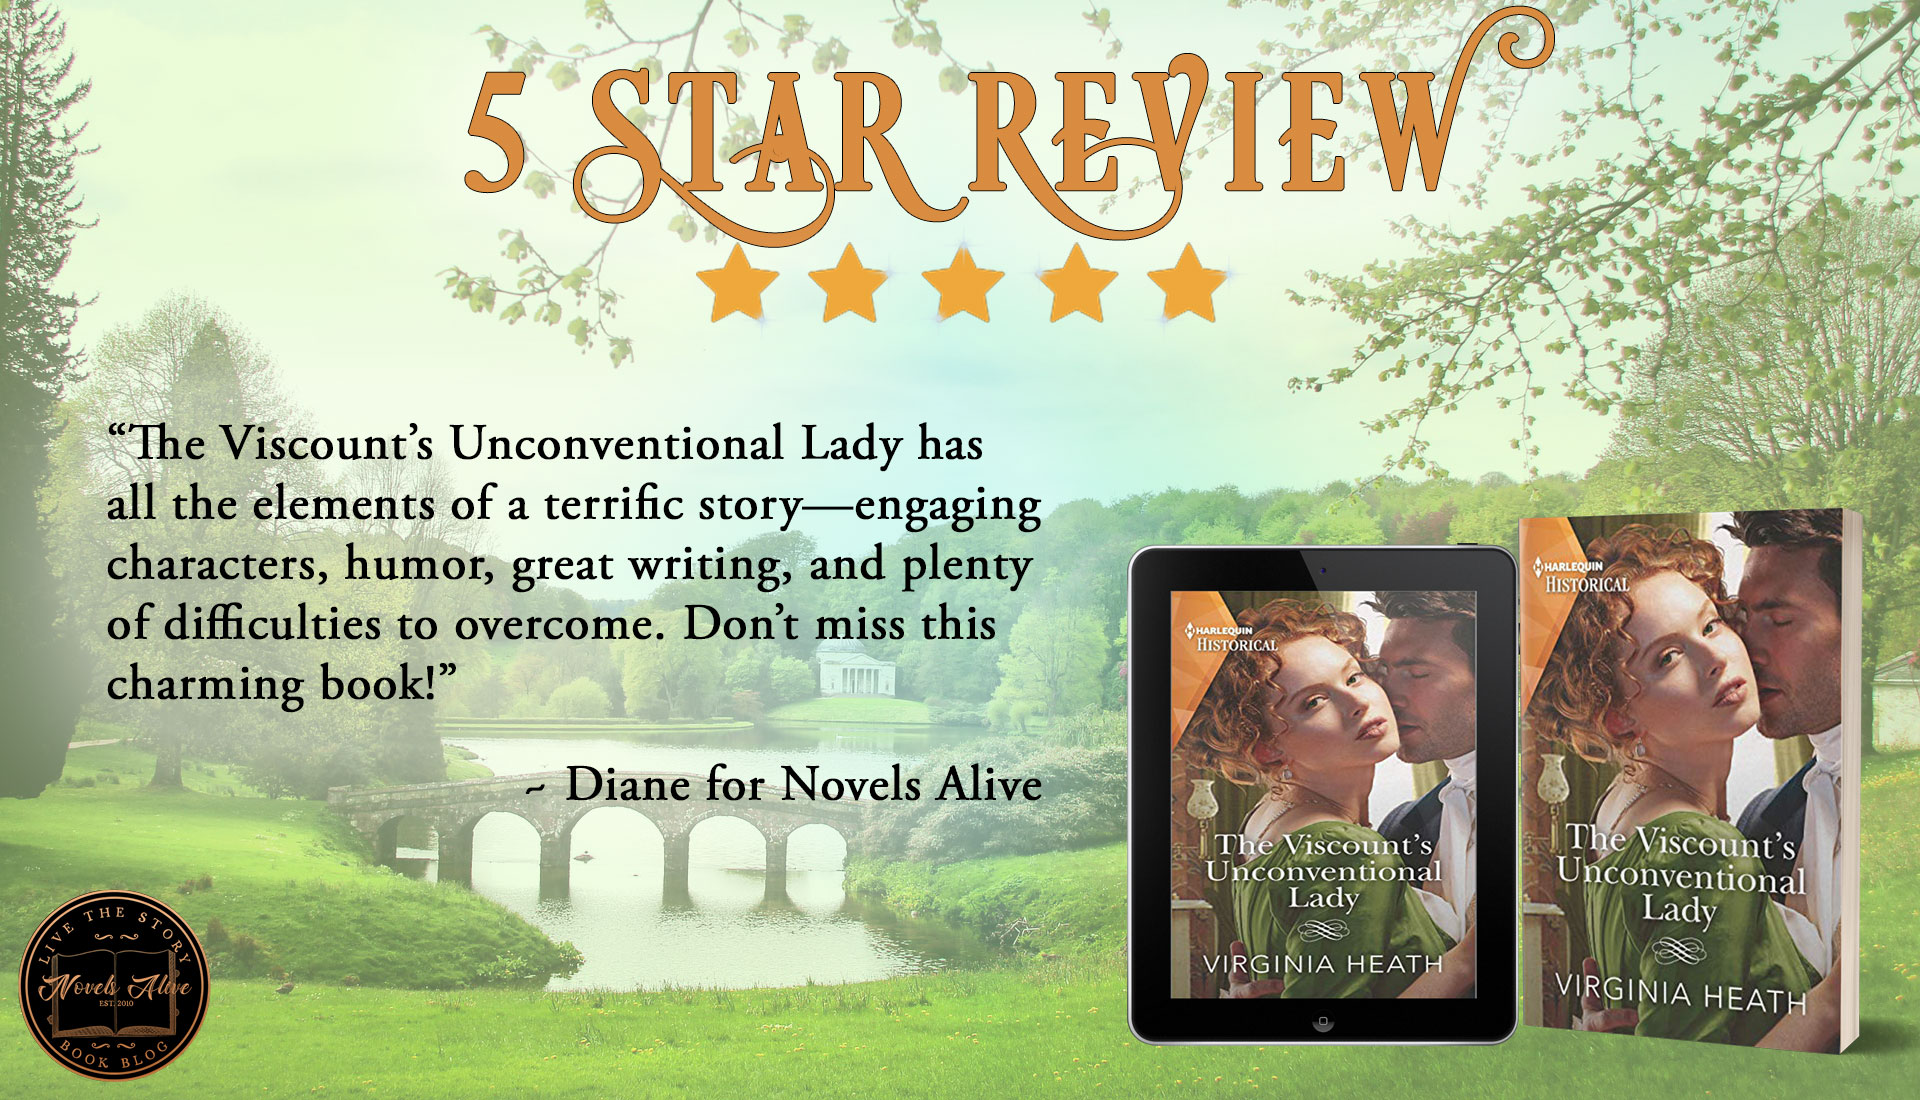 The-Viscounts-Unconventional-Lady-Review-FB